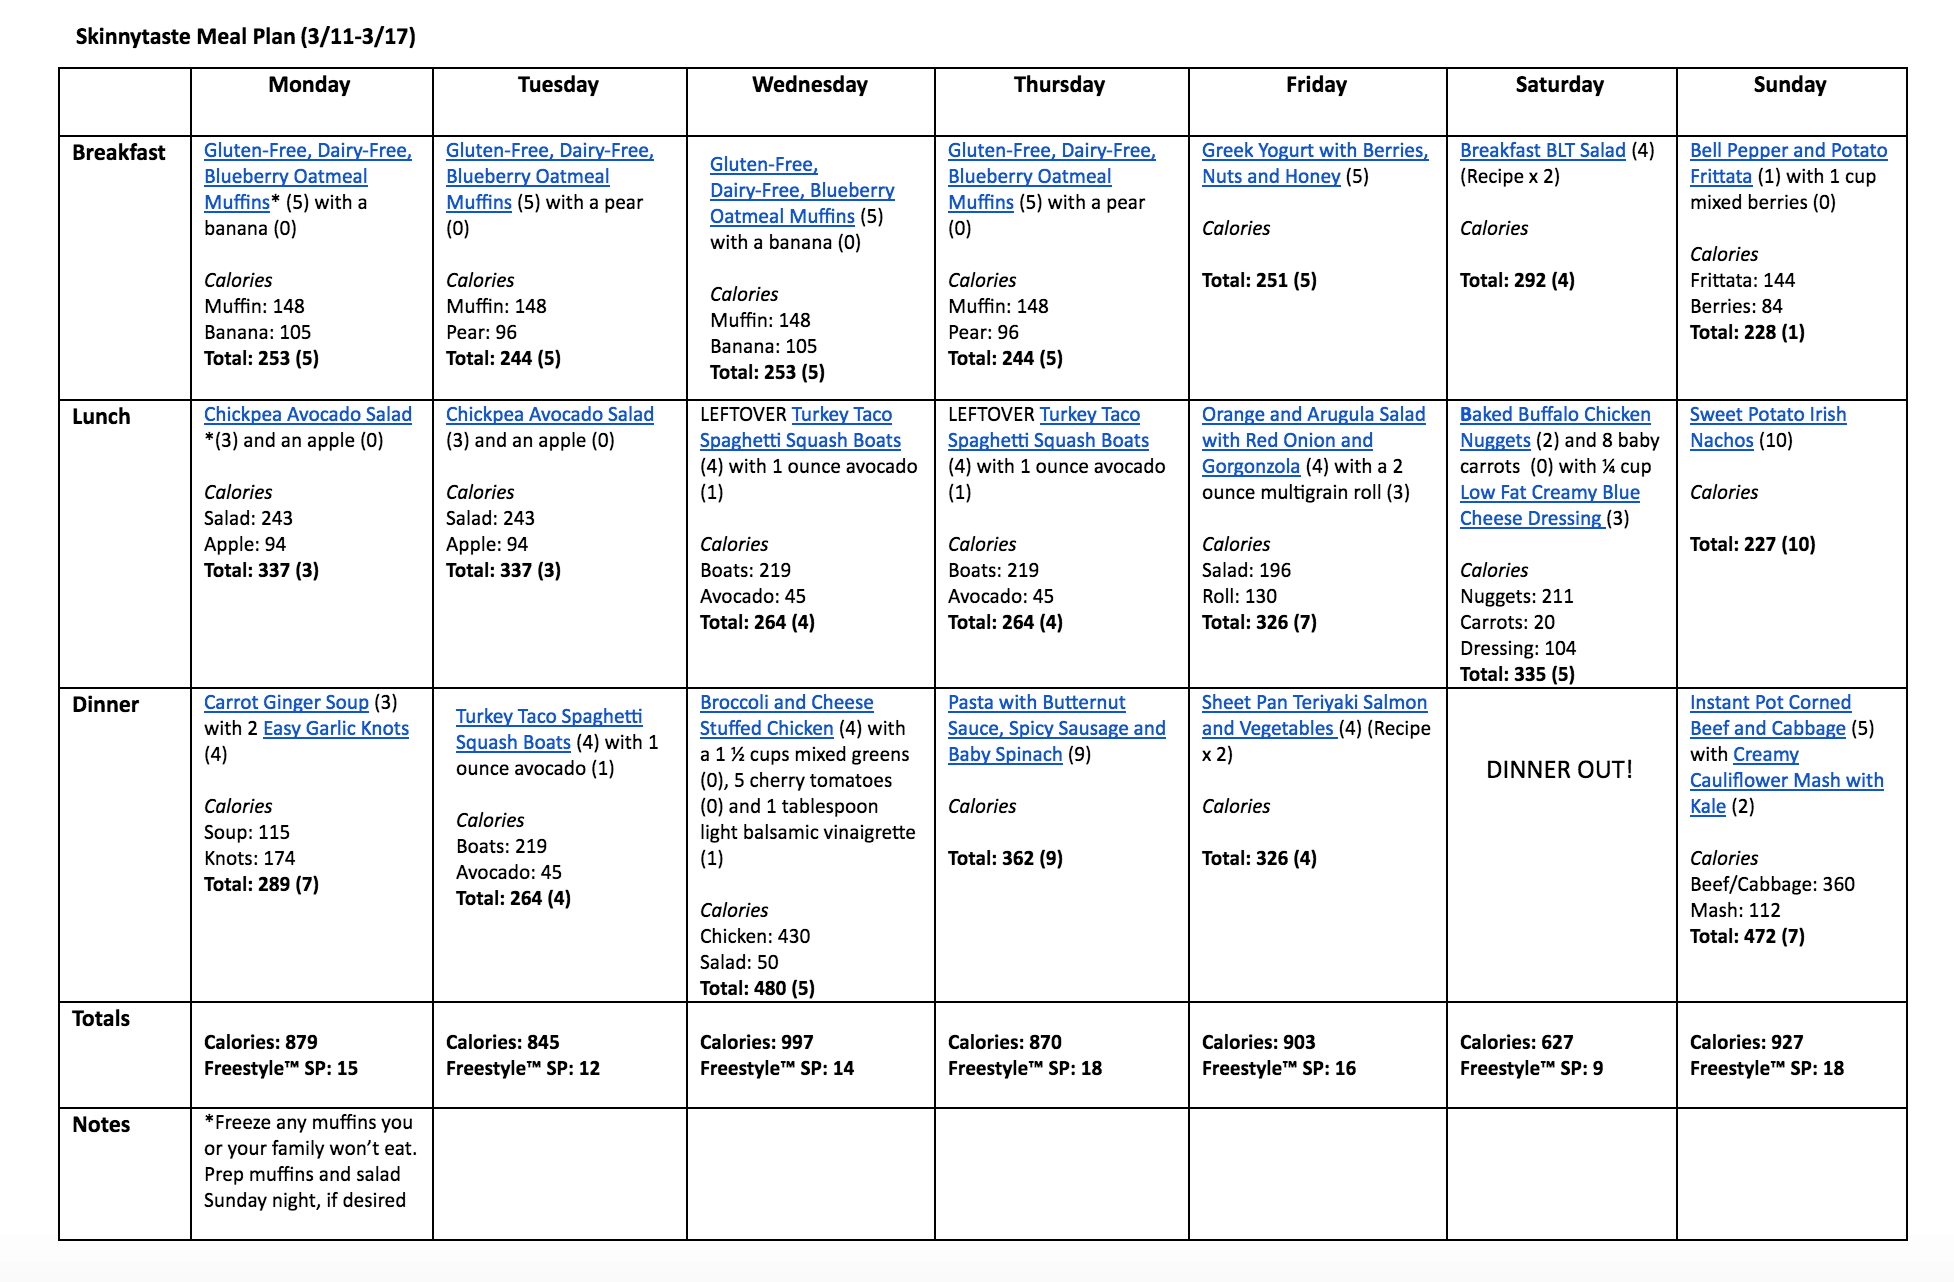 Skinnytaste Meal Plan (March 11-March 17)